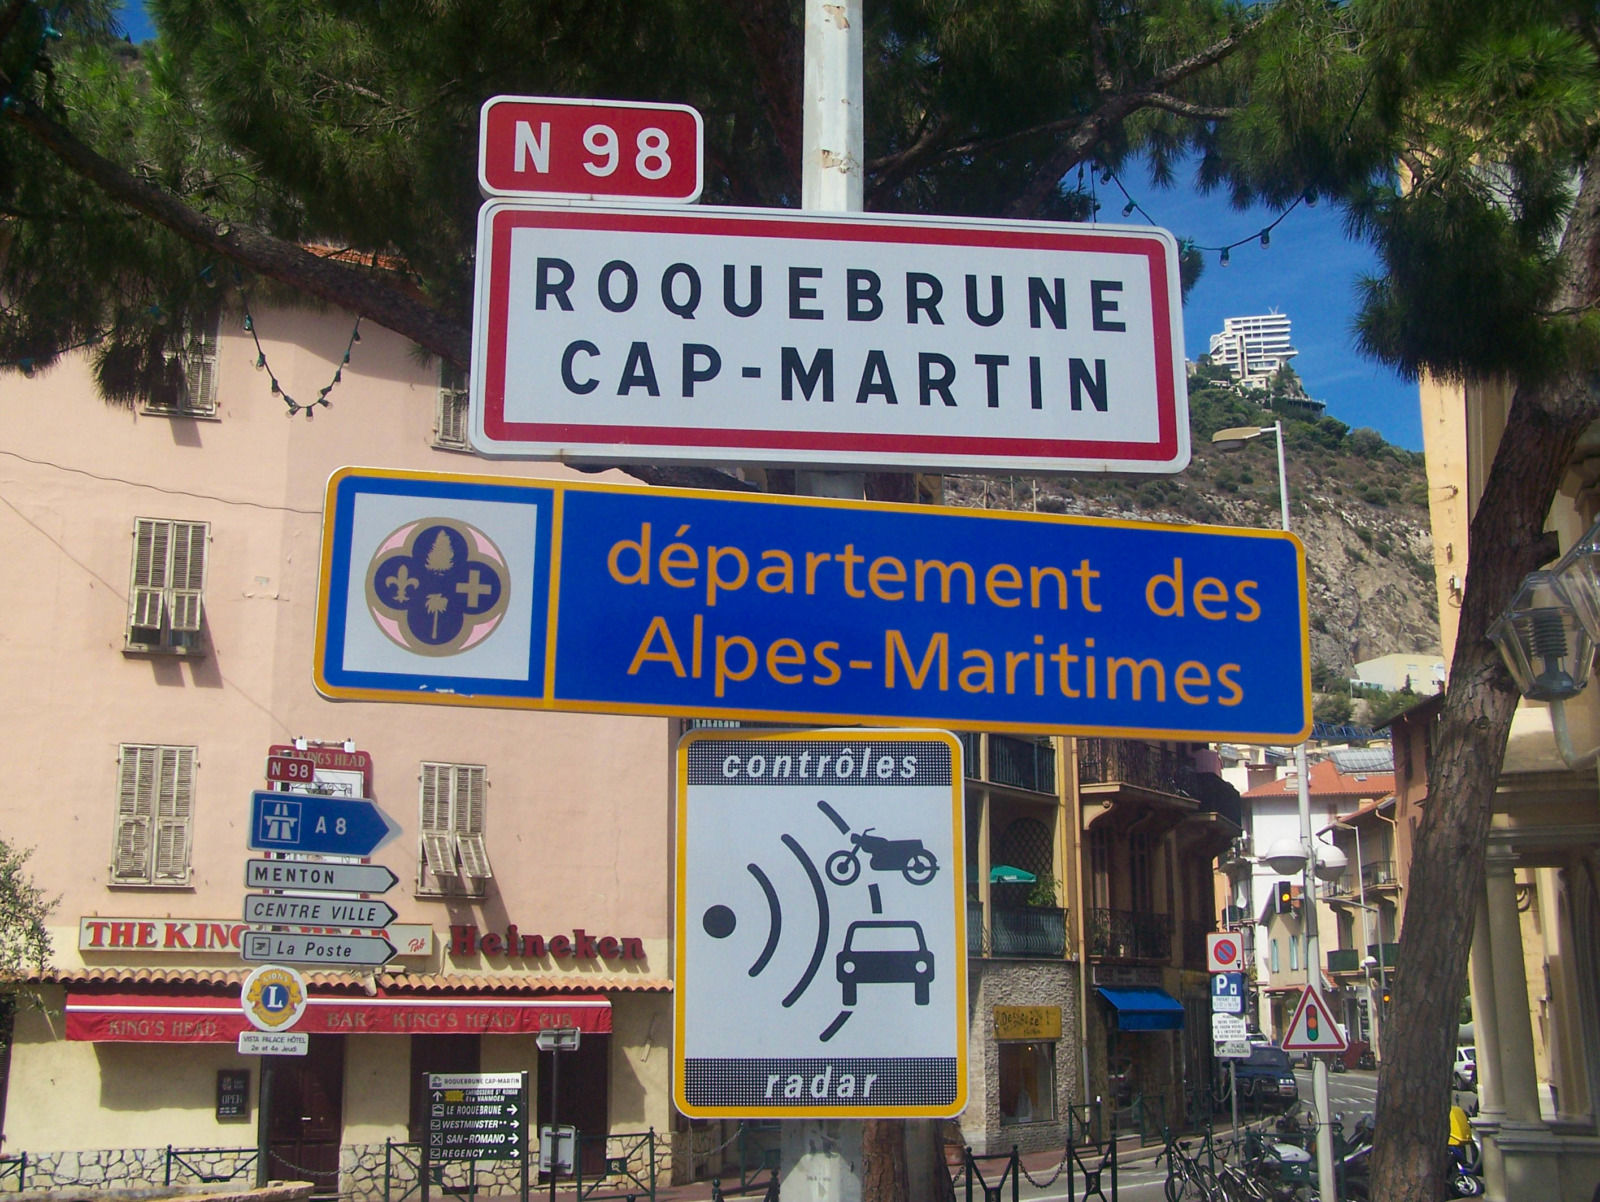 Roquebrune Cap Martin © Florian Pépellin - licence [CC BY-SA 2.5] from Wikimedia Commons